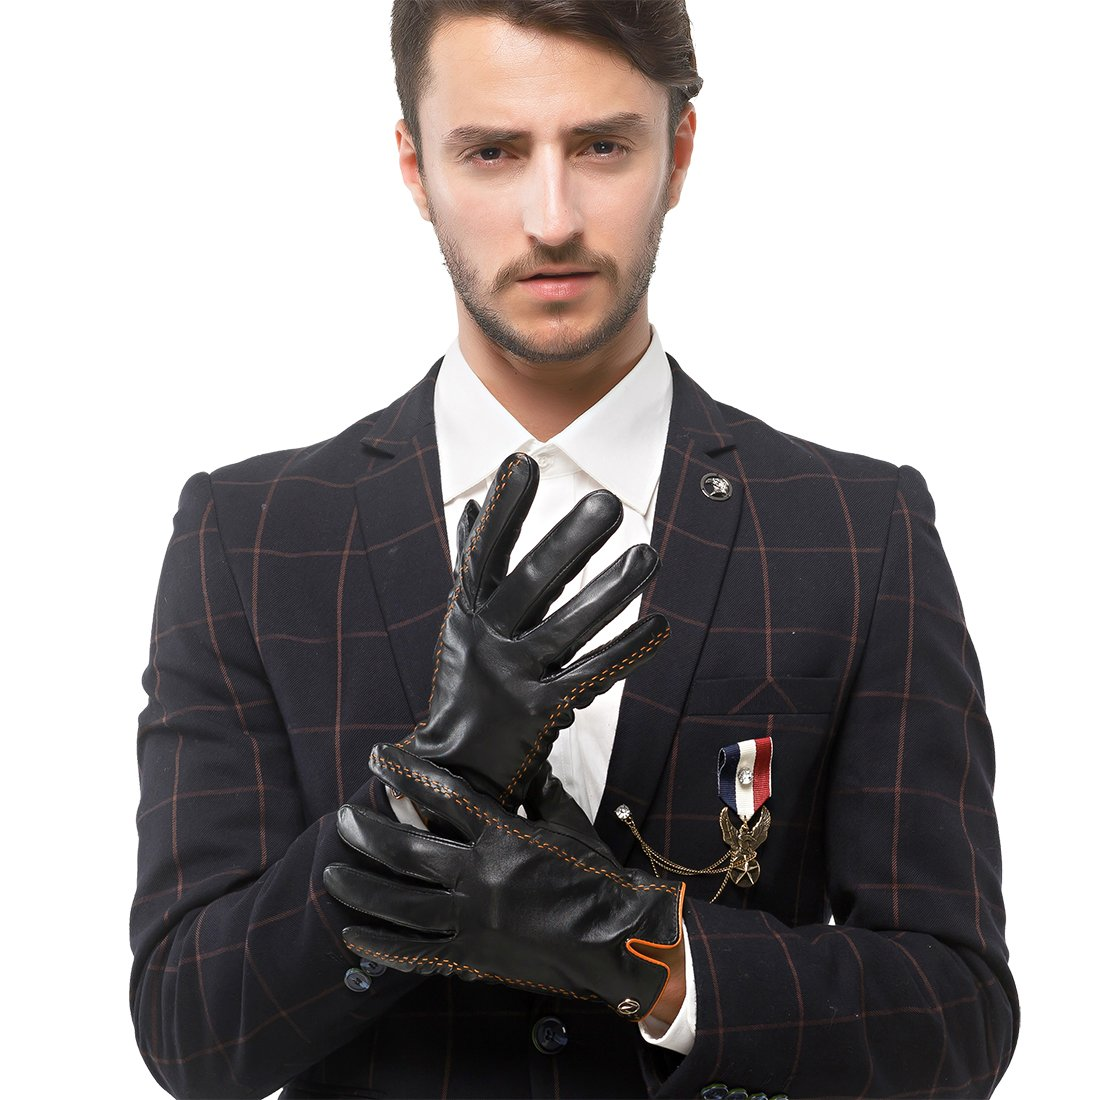 Nappaglo Men's Italian Nappa Leather Gloves Touchscreen Lambskin Warm Gloves with Lines of Hit Color (S (Palm Girth:up to 8''), Black (Touchscreen)) by Nappaglo (Image #3)